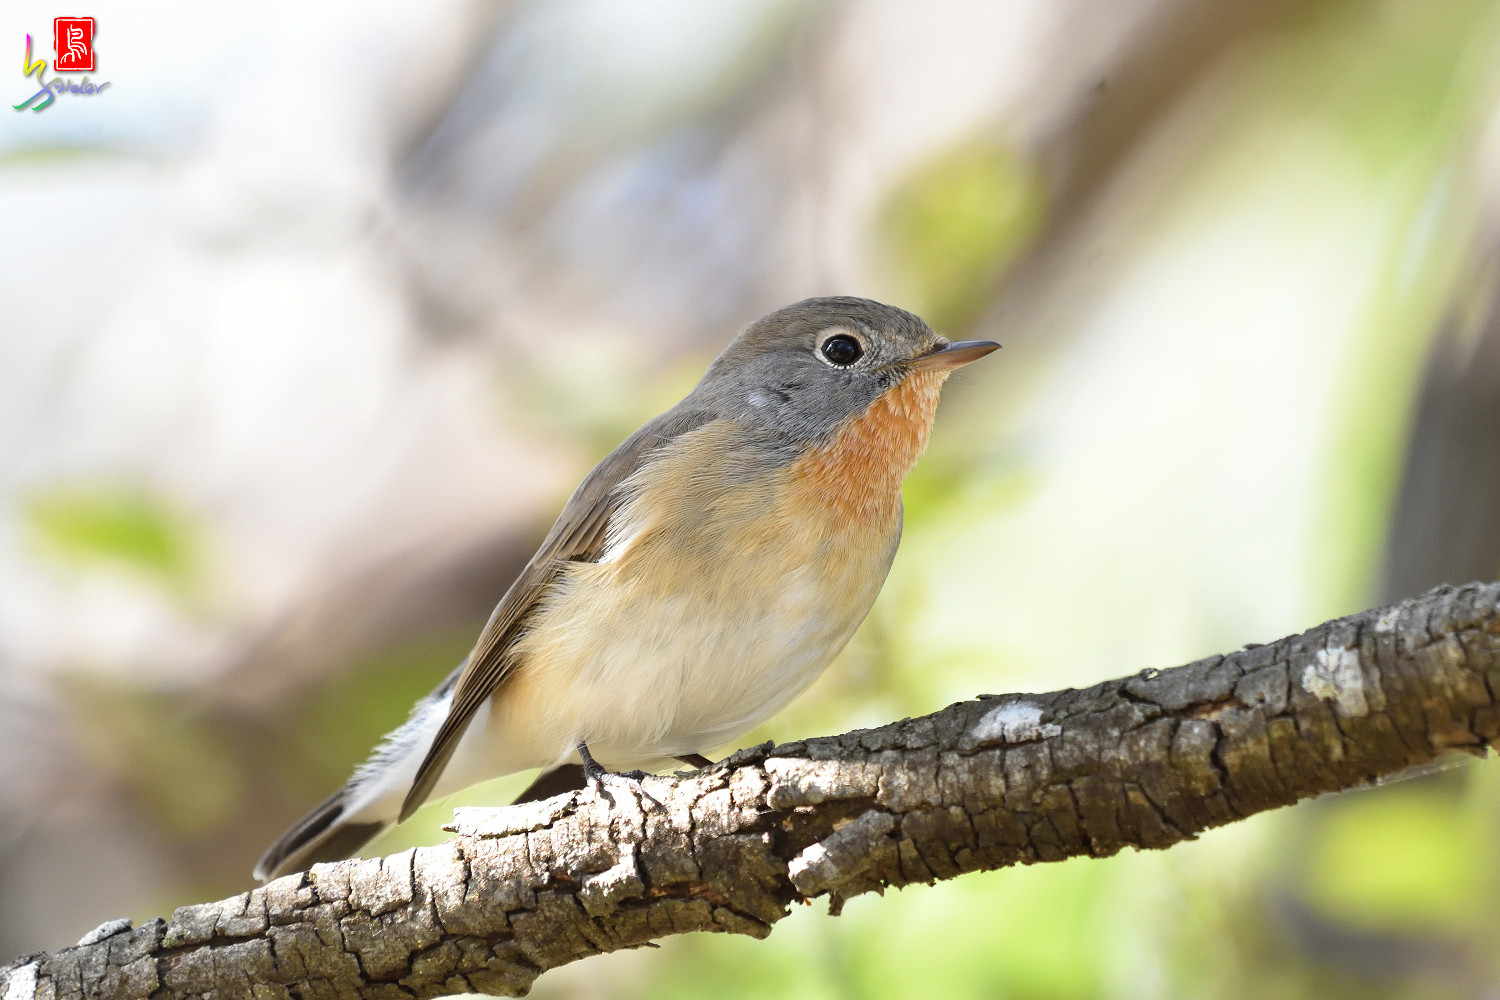 Red-breasted_Flycatcher_5857